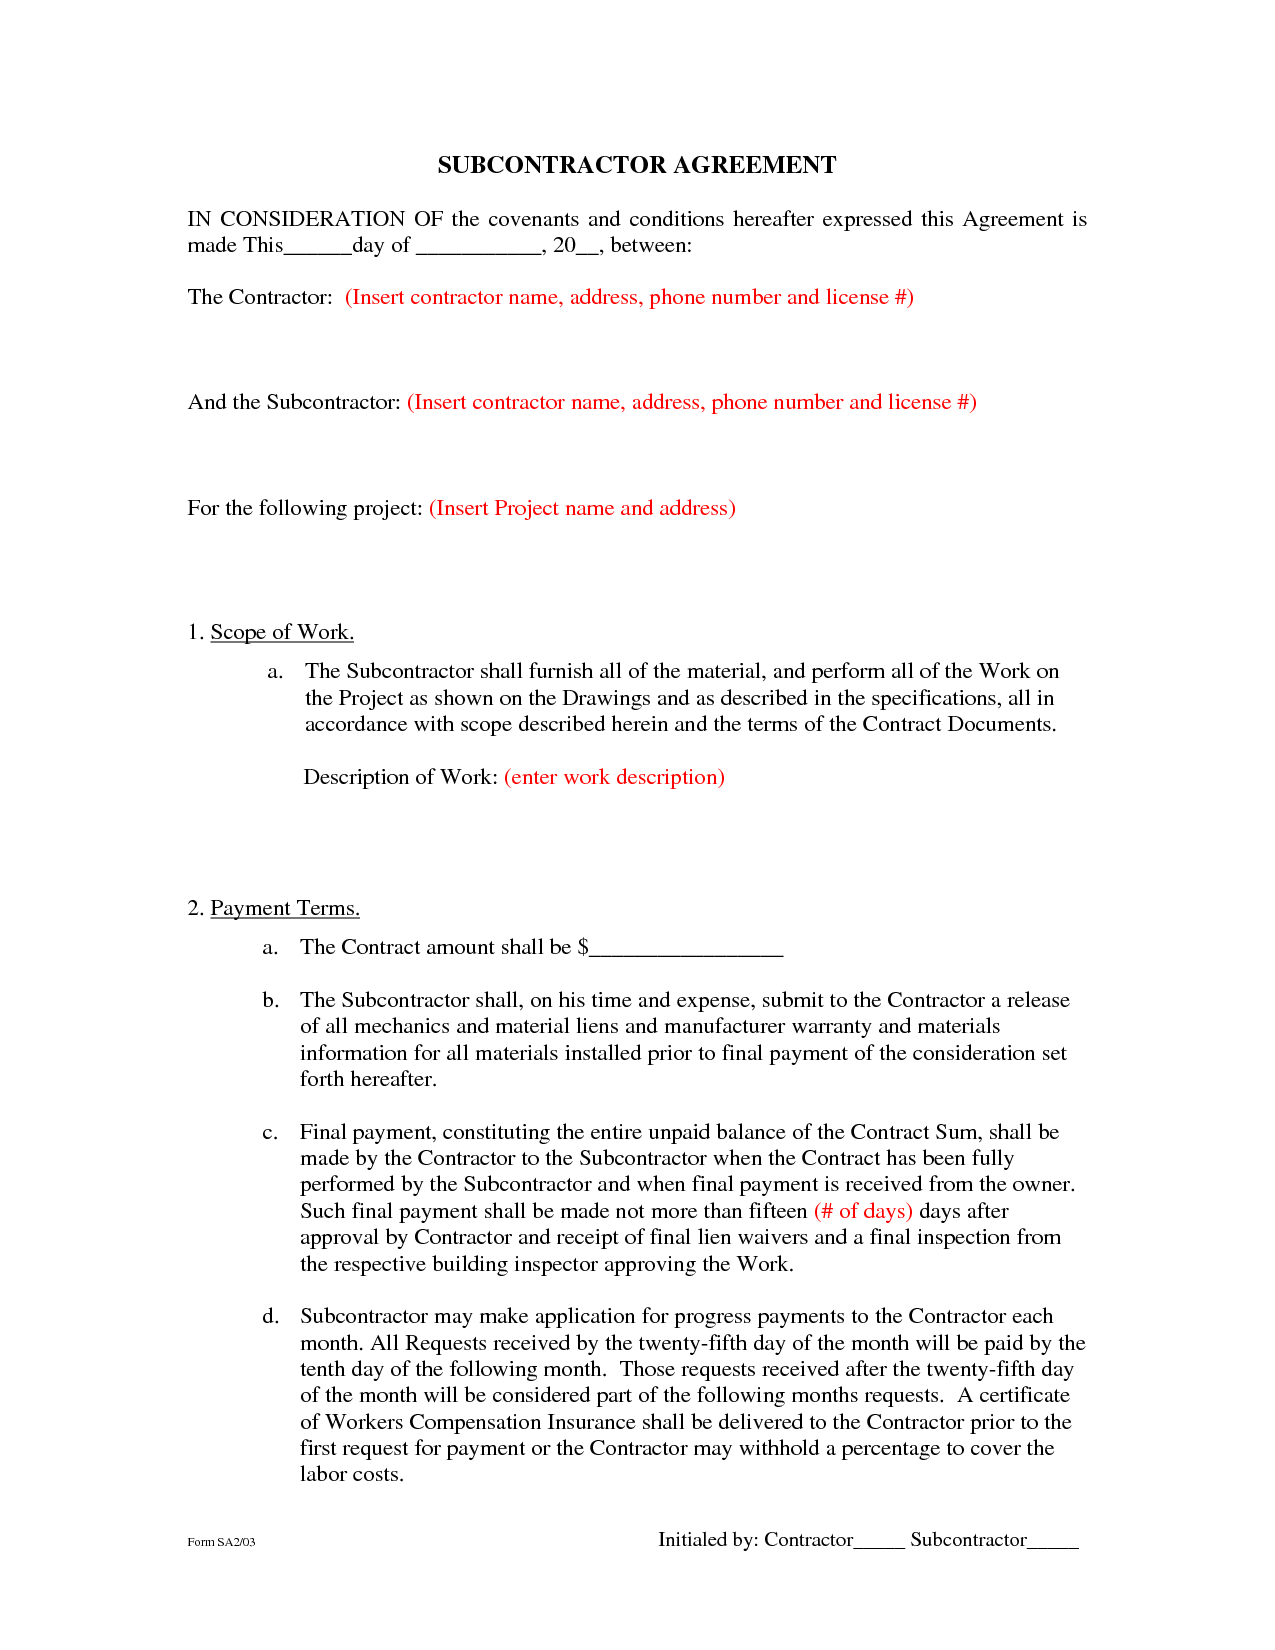 Subcontractor agreement forms by beunaventuralongjas Find subcontractors